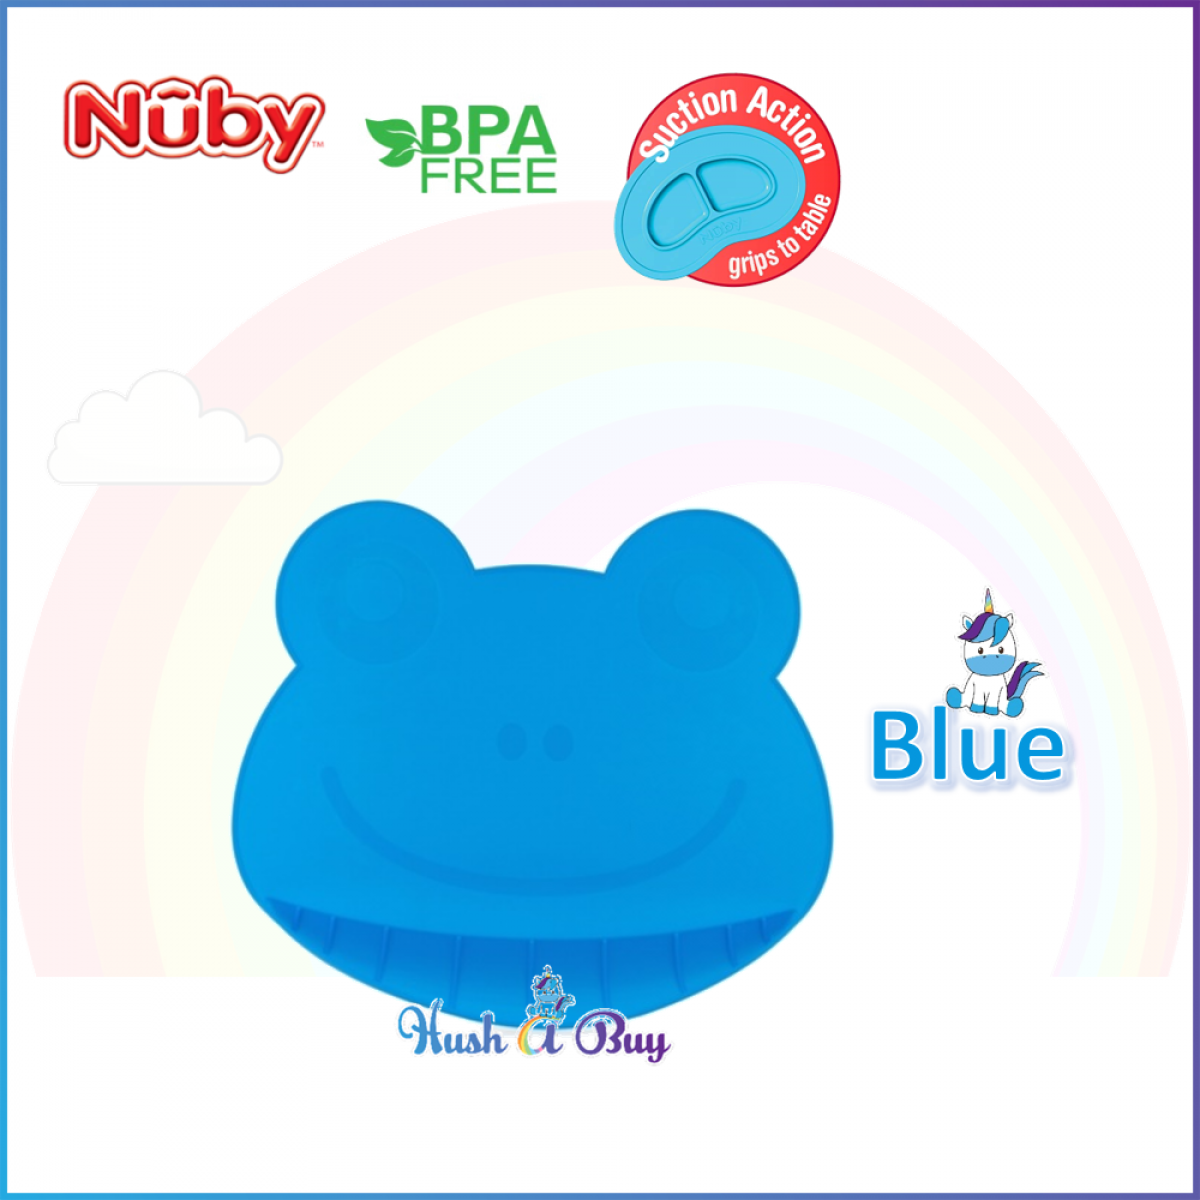 Nuby Suregrip Silicone Placemat in Frog Design (2 colors available)